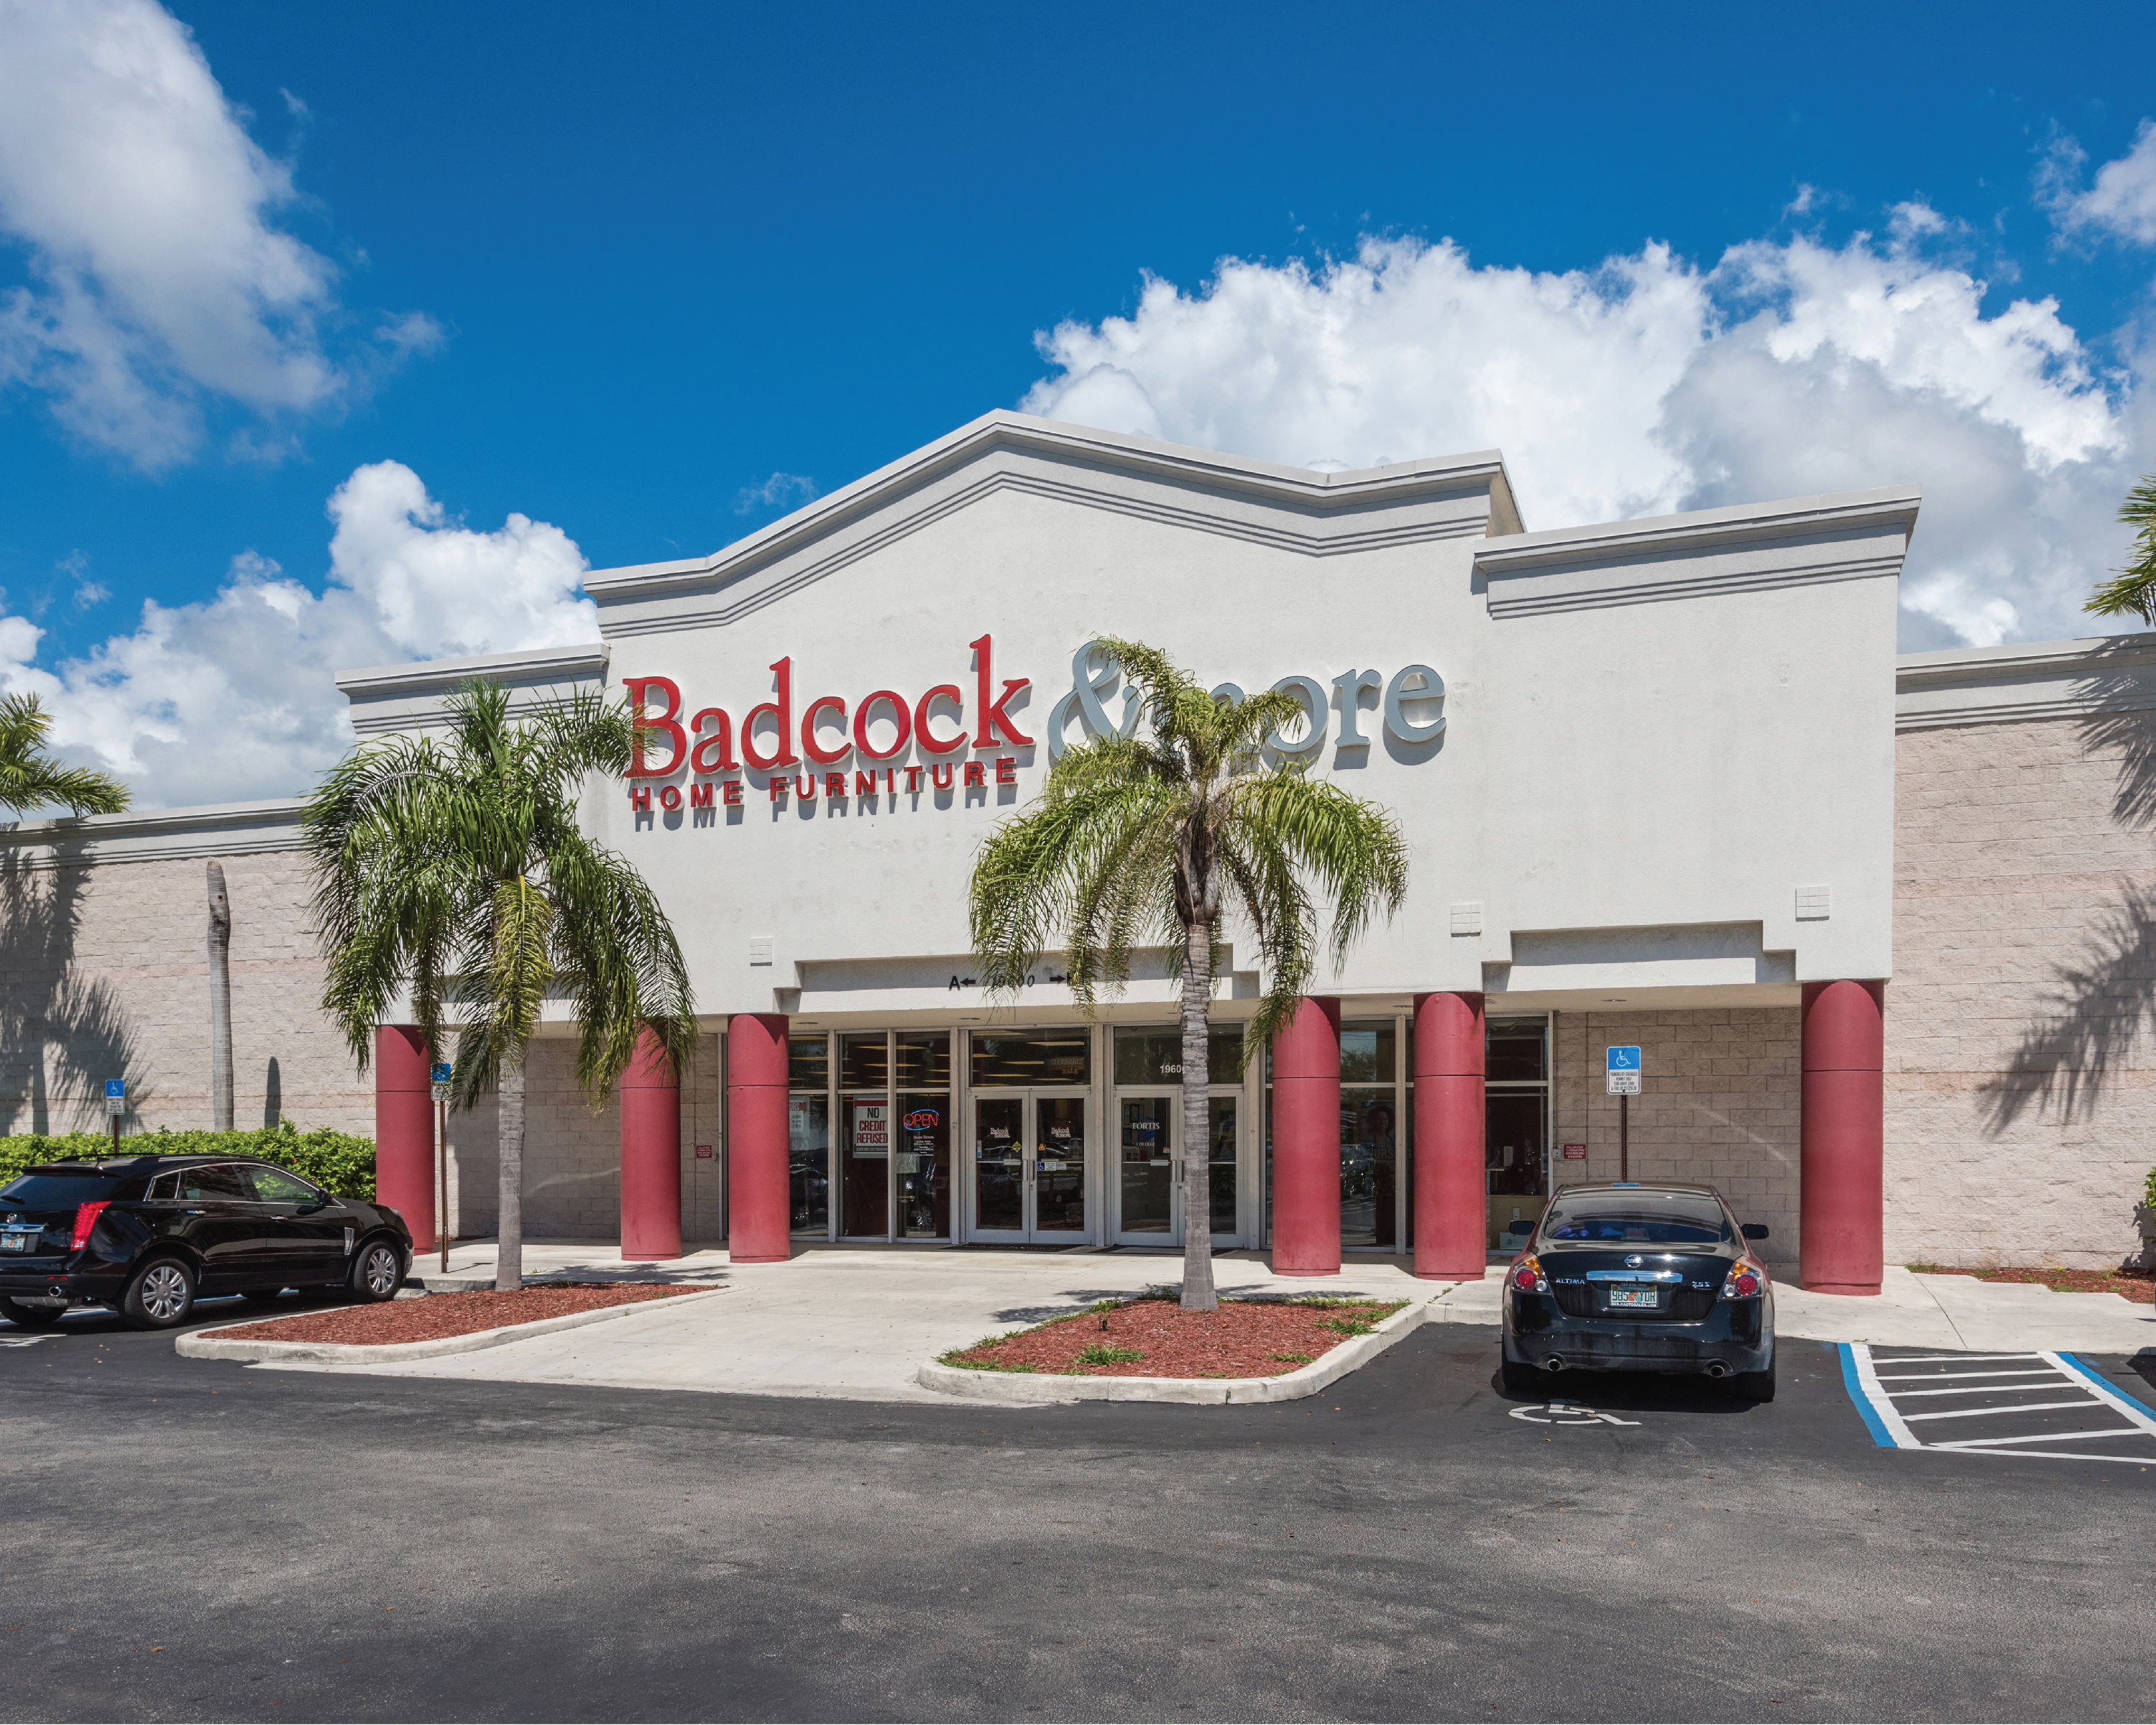 Badcock Home Furniture More Miami Gardens Fl 33056